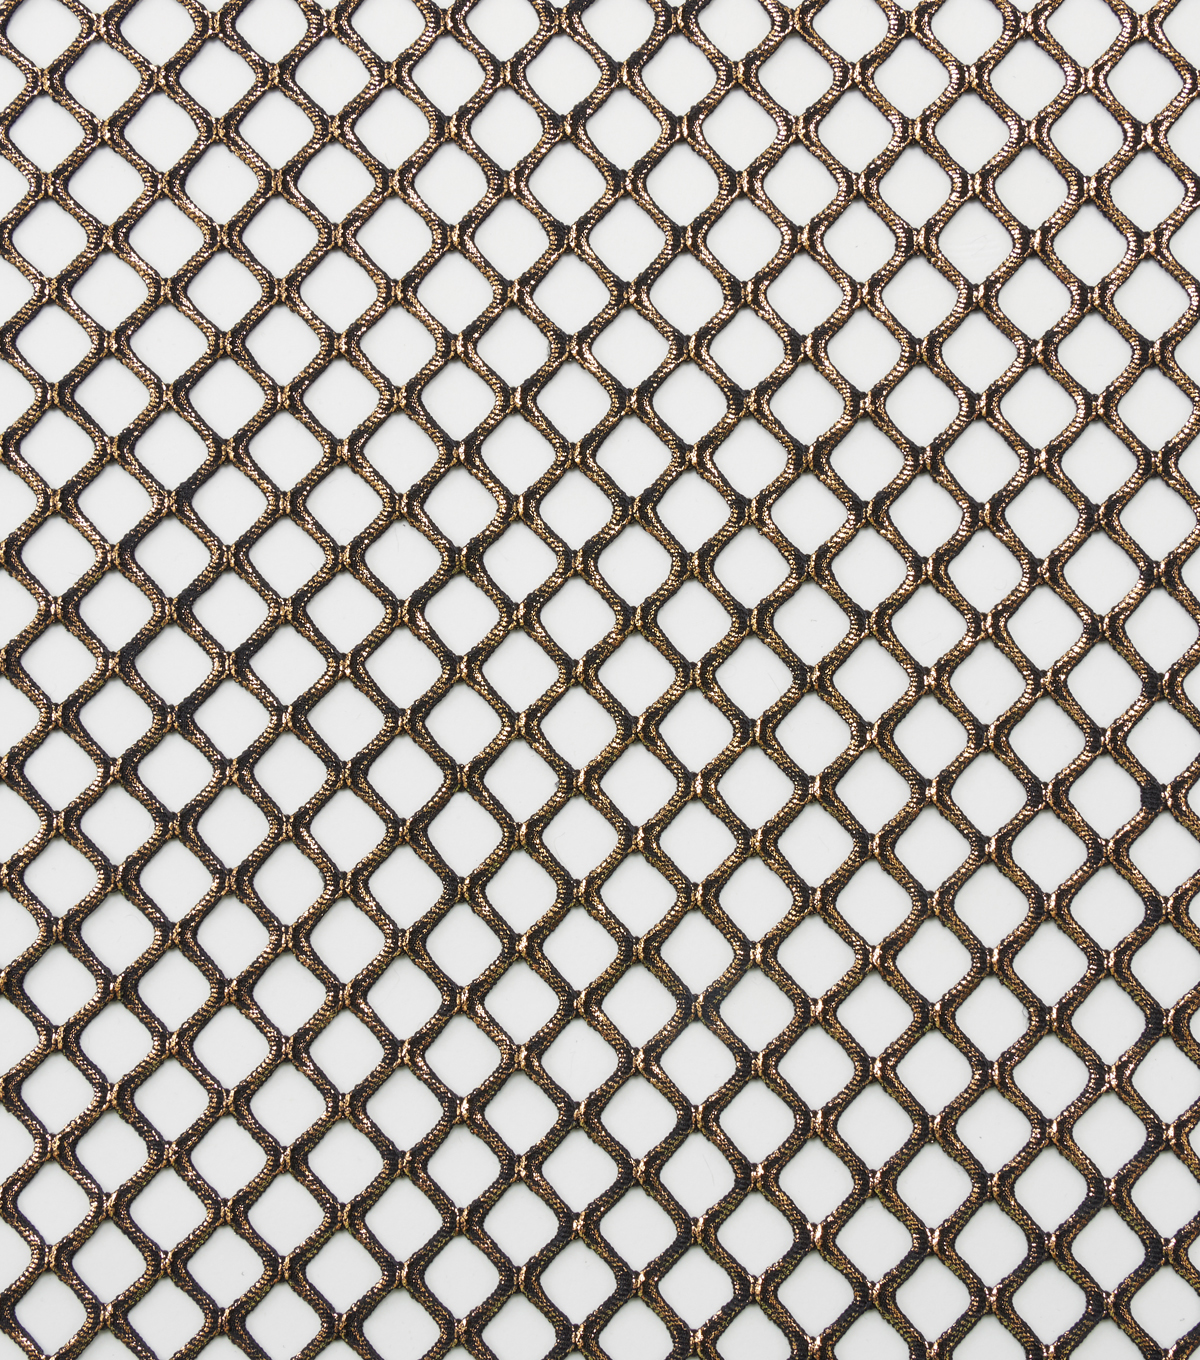 Cosplay By Yaya Han Metallic Netting Fabric 56\u0022-Copper